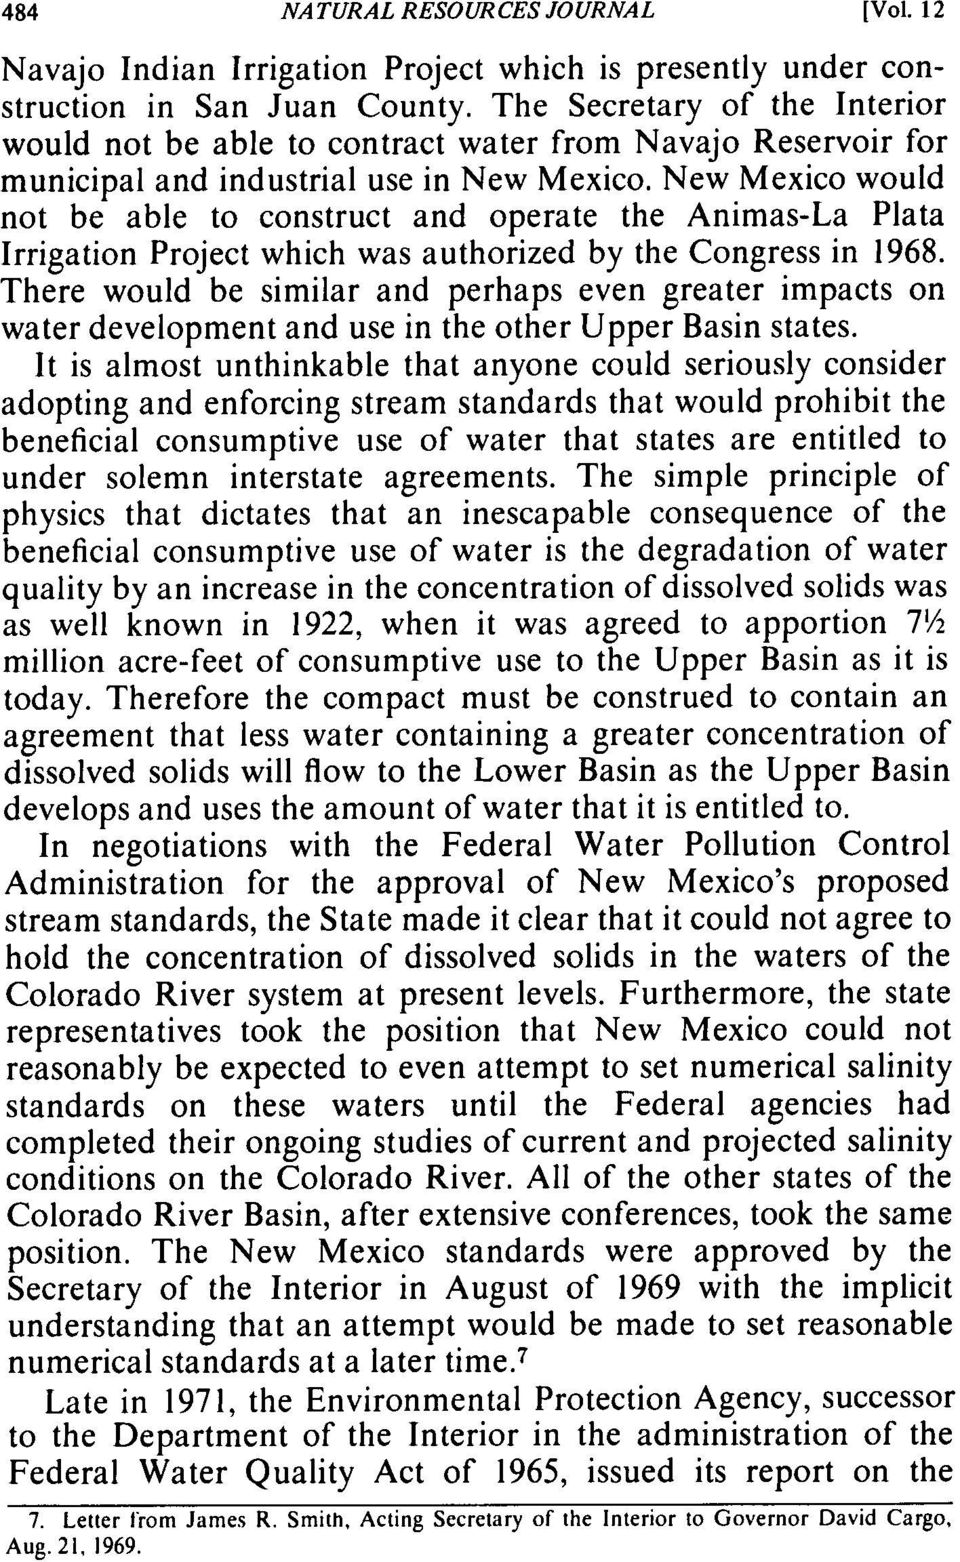 New Mexico would not be able to construct and operate the Animas-La Plata Irrigation Project which was authorized by the Congress in 1968.